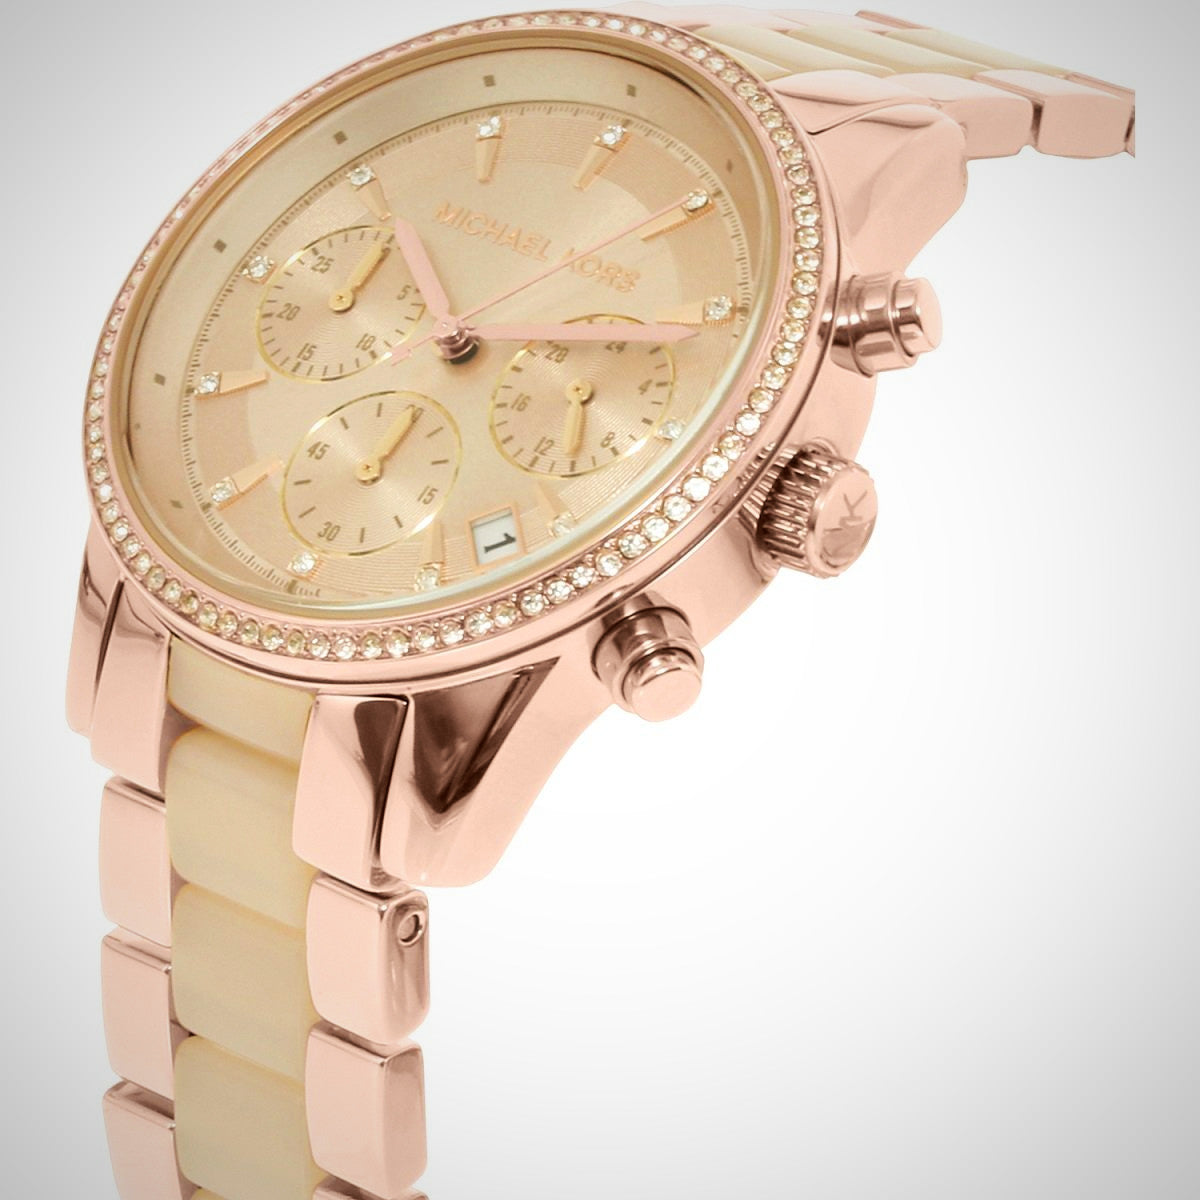 Michael Kors MK6307 Ritz Rose Gold Stainless Steel Chronograph Ladies Watch